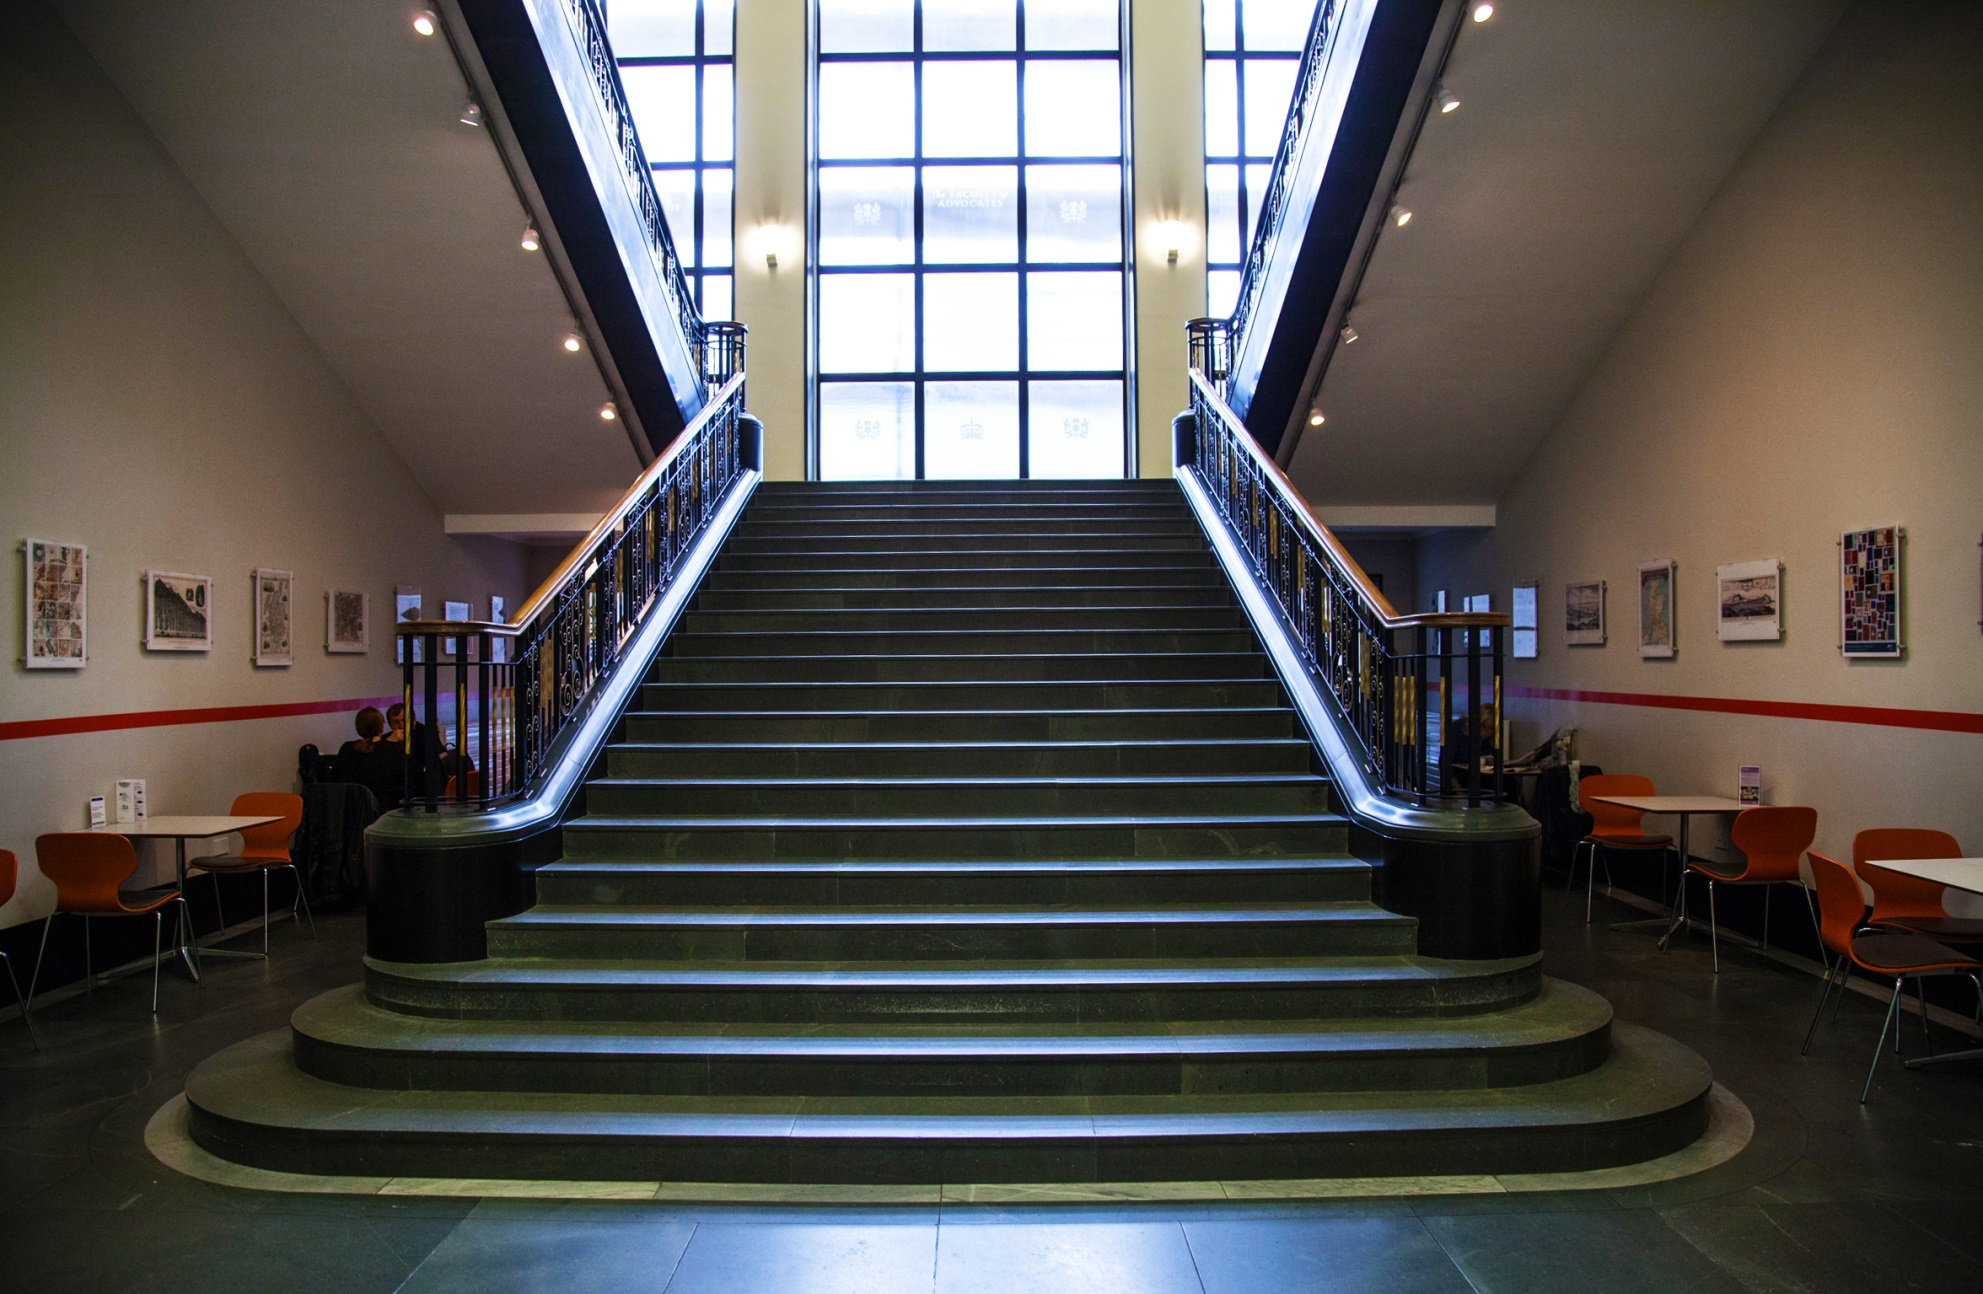 Image of central staircase in the Library